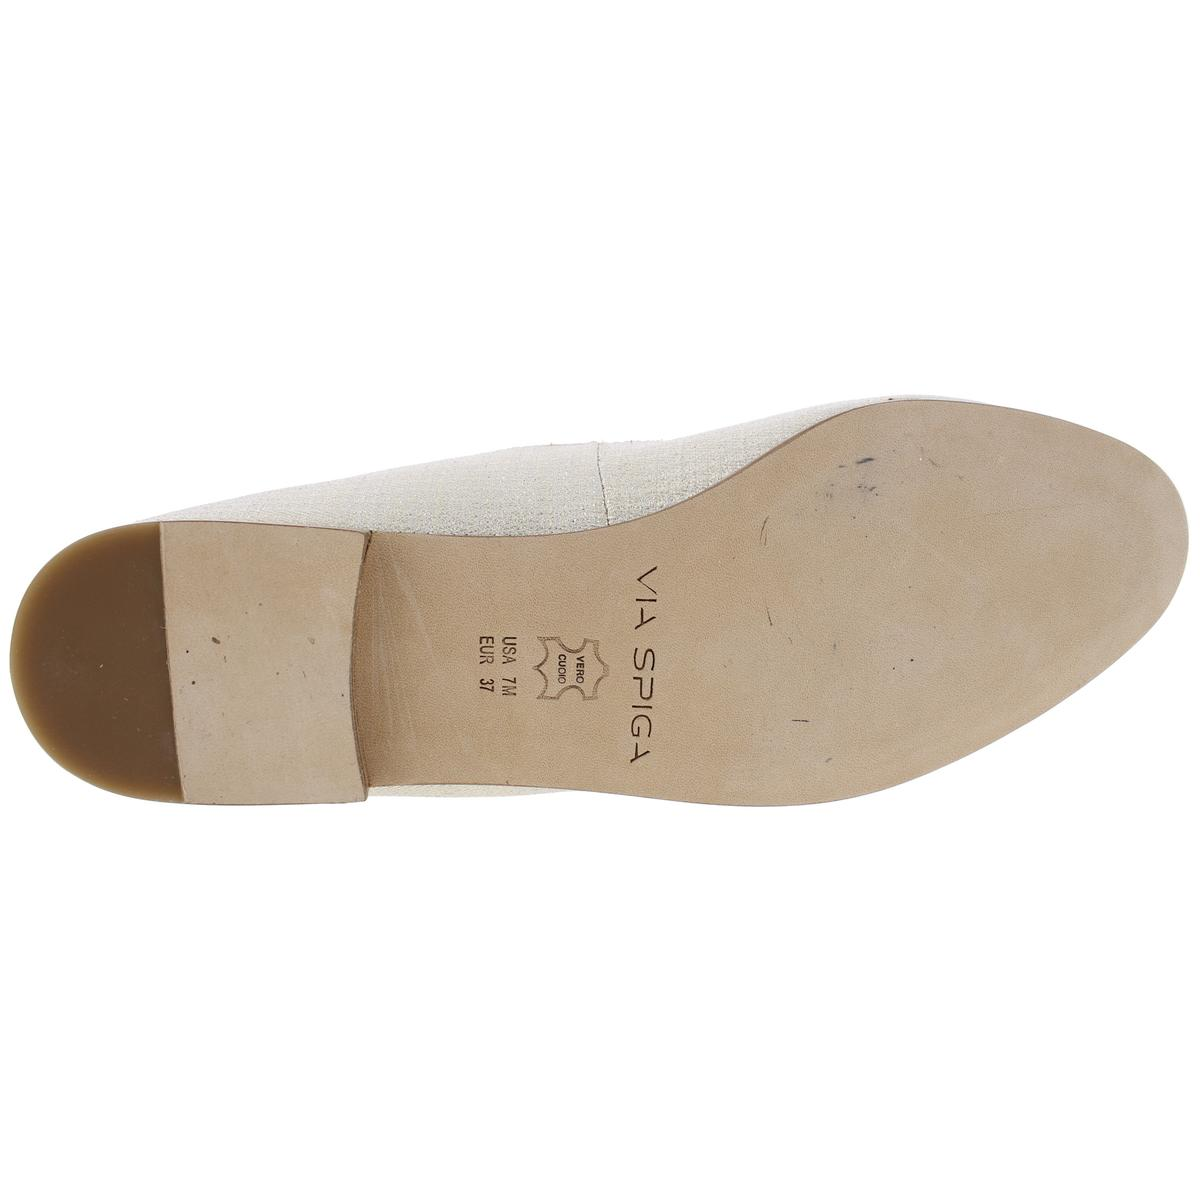 Via-Spiga-Womens-Yovela-Criss-Cross-Front-Ballet-Flats-Shoes-BHFO-4384 thumbnail 8